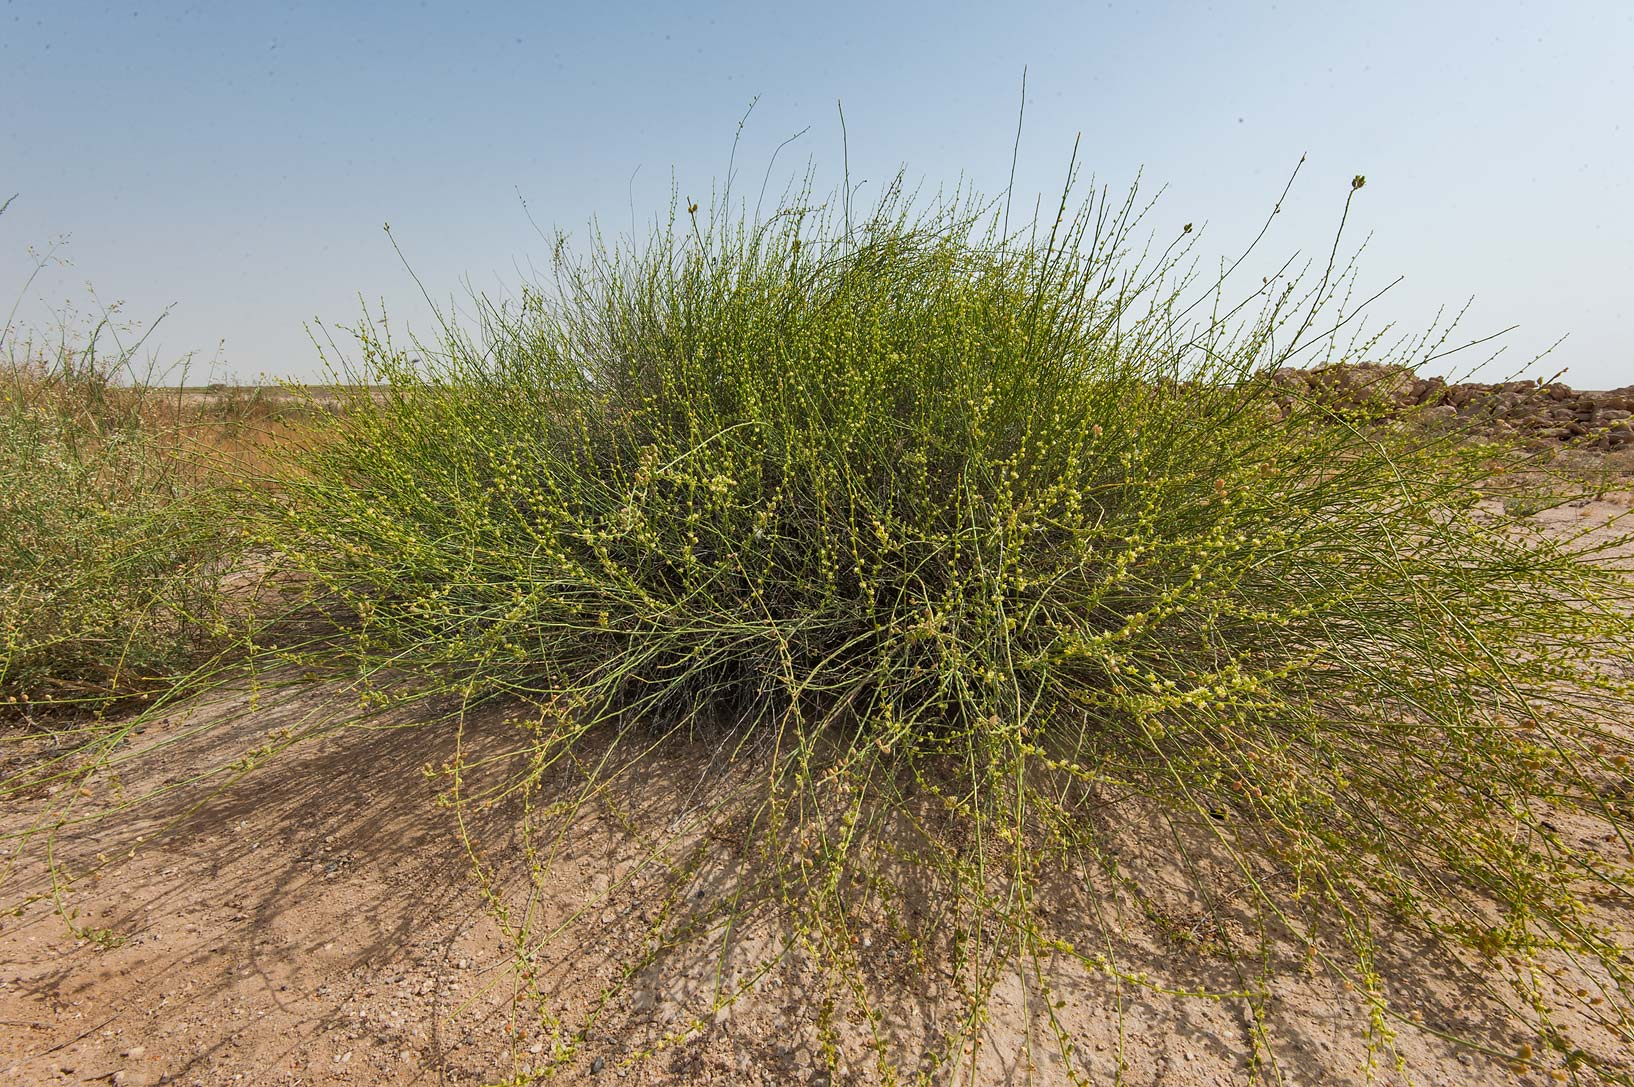 Bush of Ochradenus aucheri on periphery of Green...in Irkhaya (Irkaya) Farms. Qatar